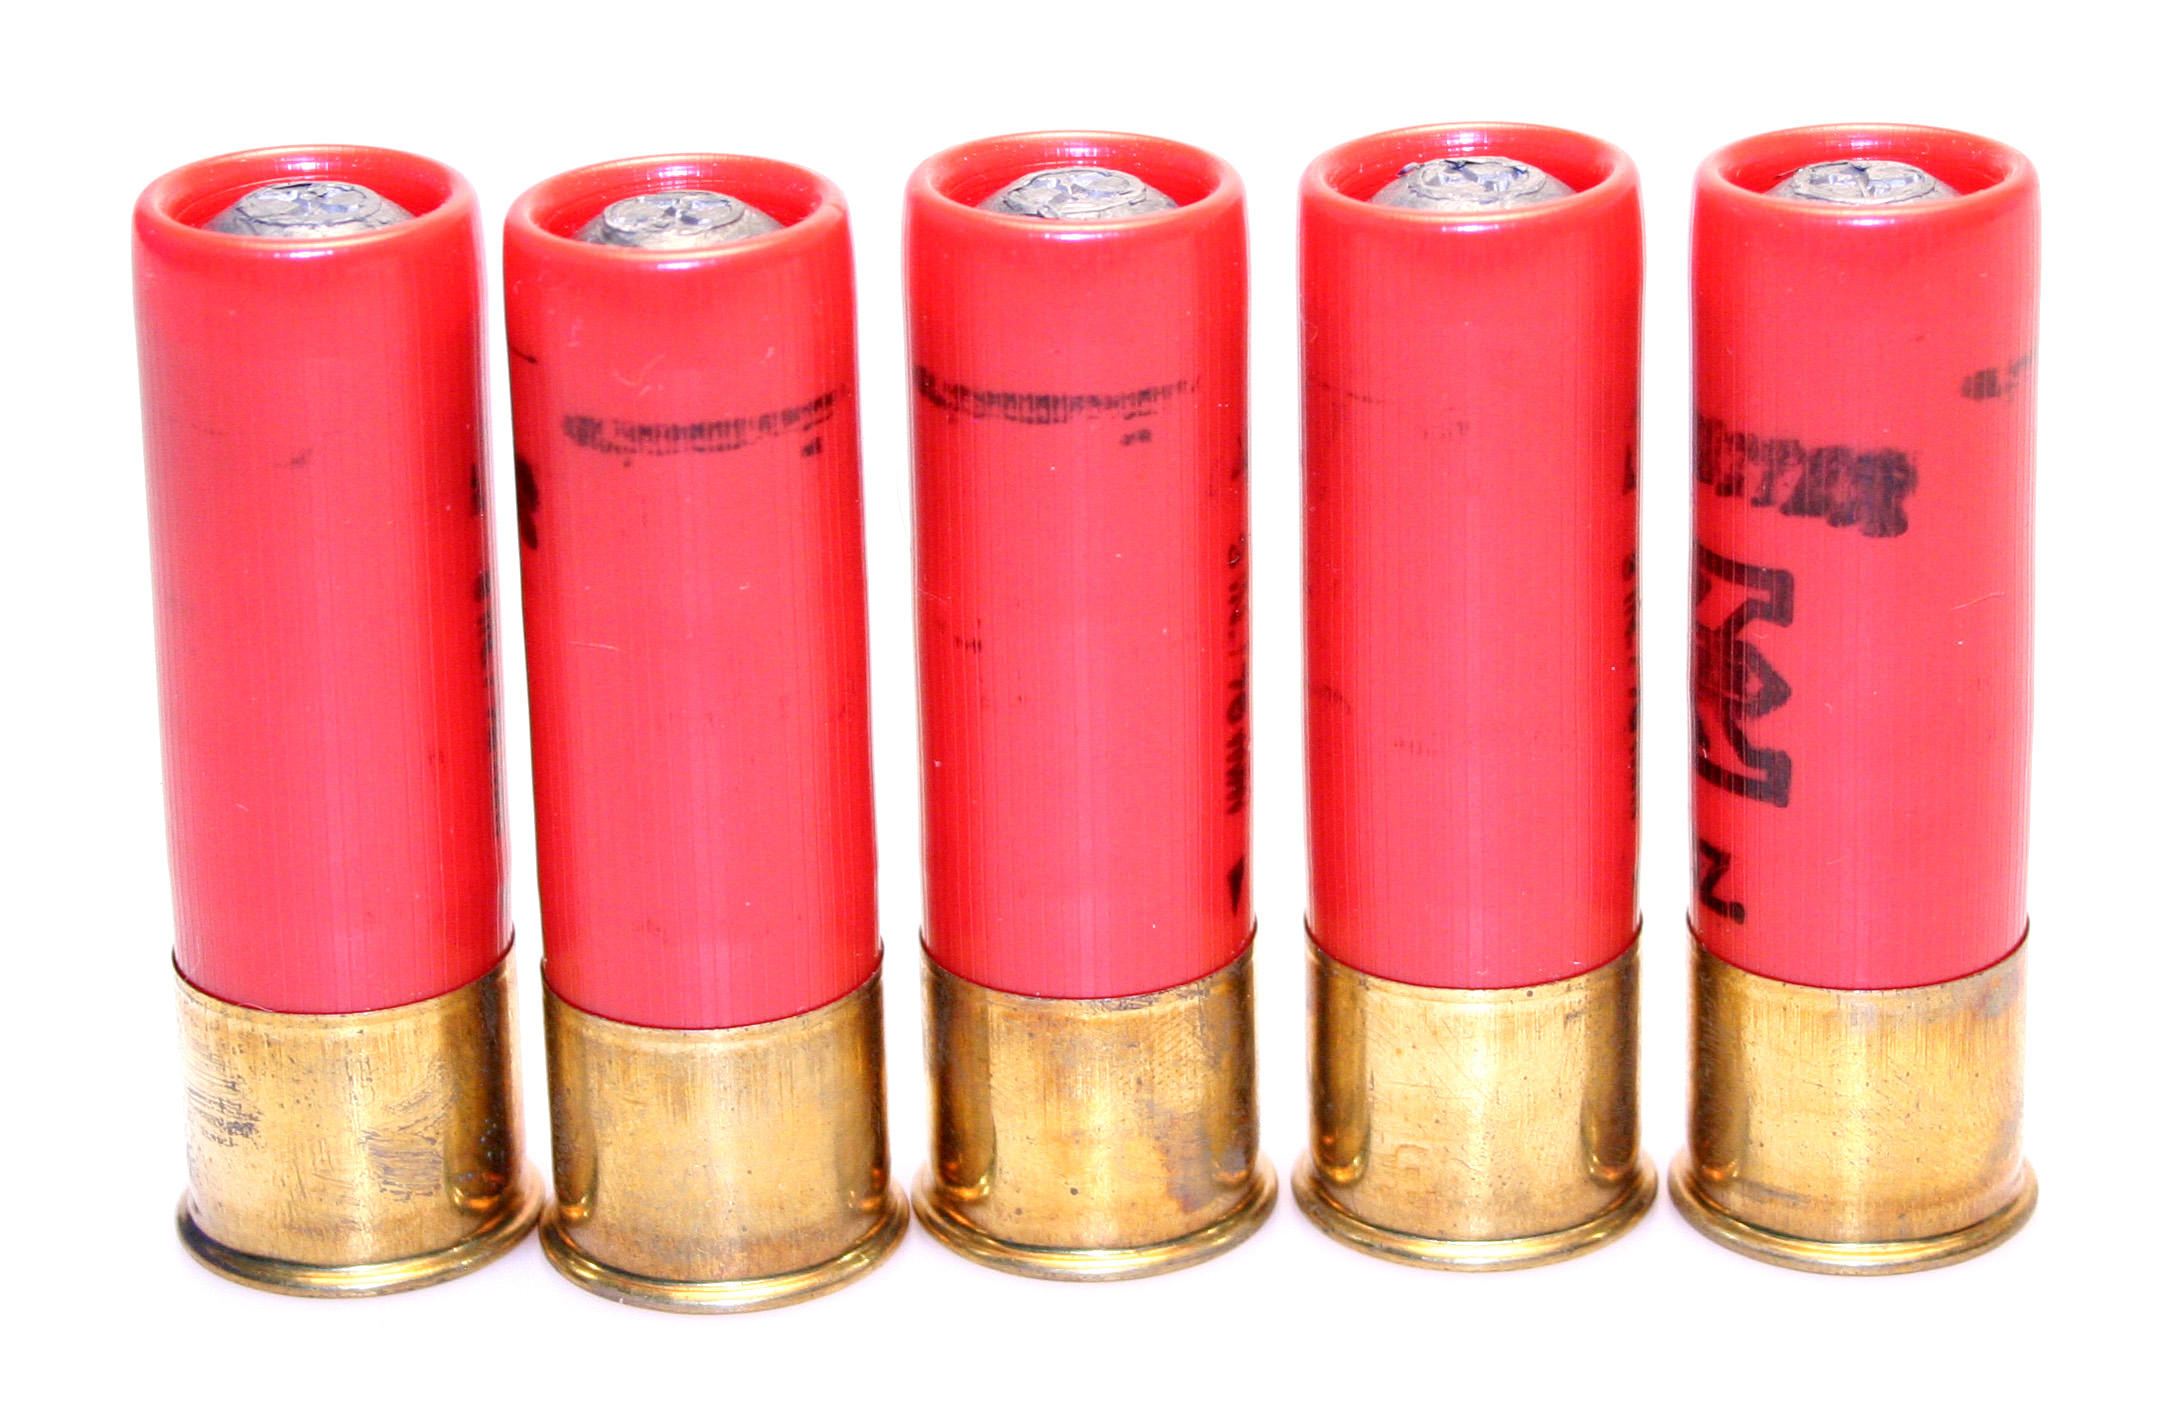 12 Gauge Shotgun Shells SLUG 3 by eviln8 on DeviantArt